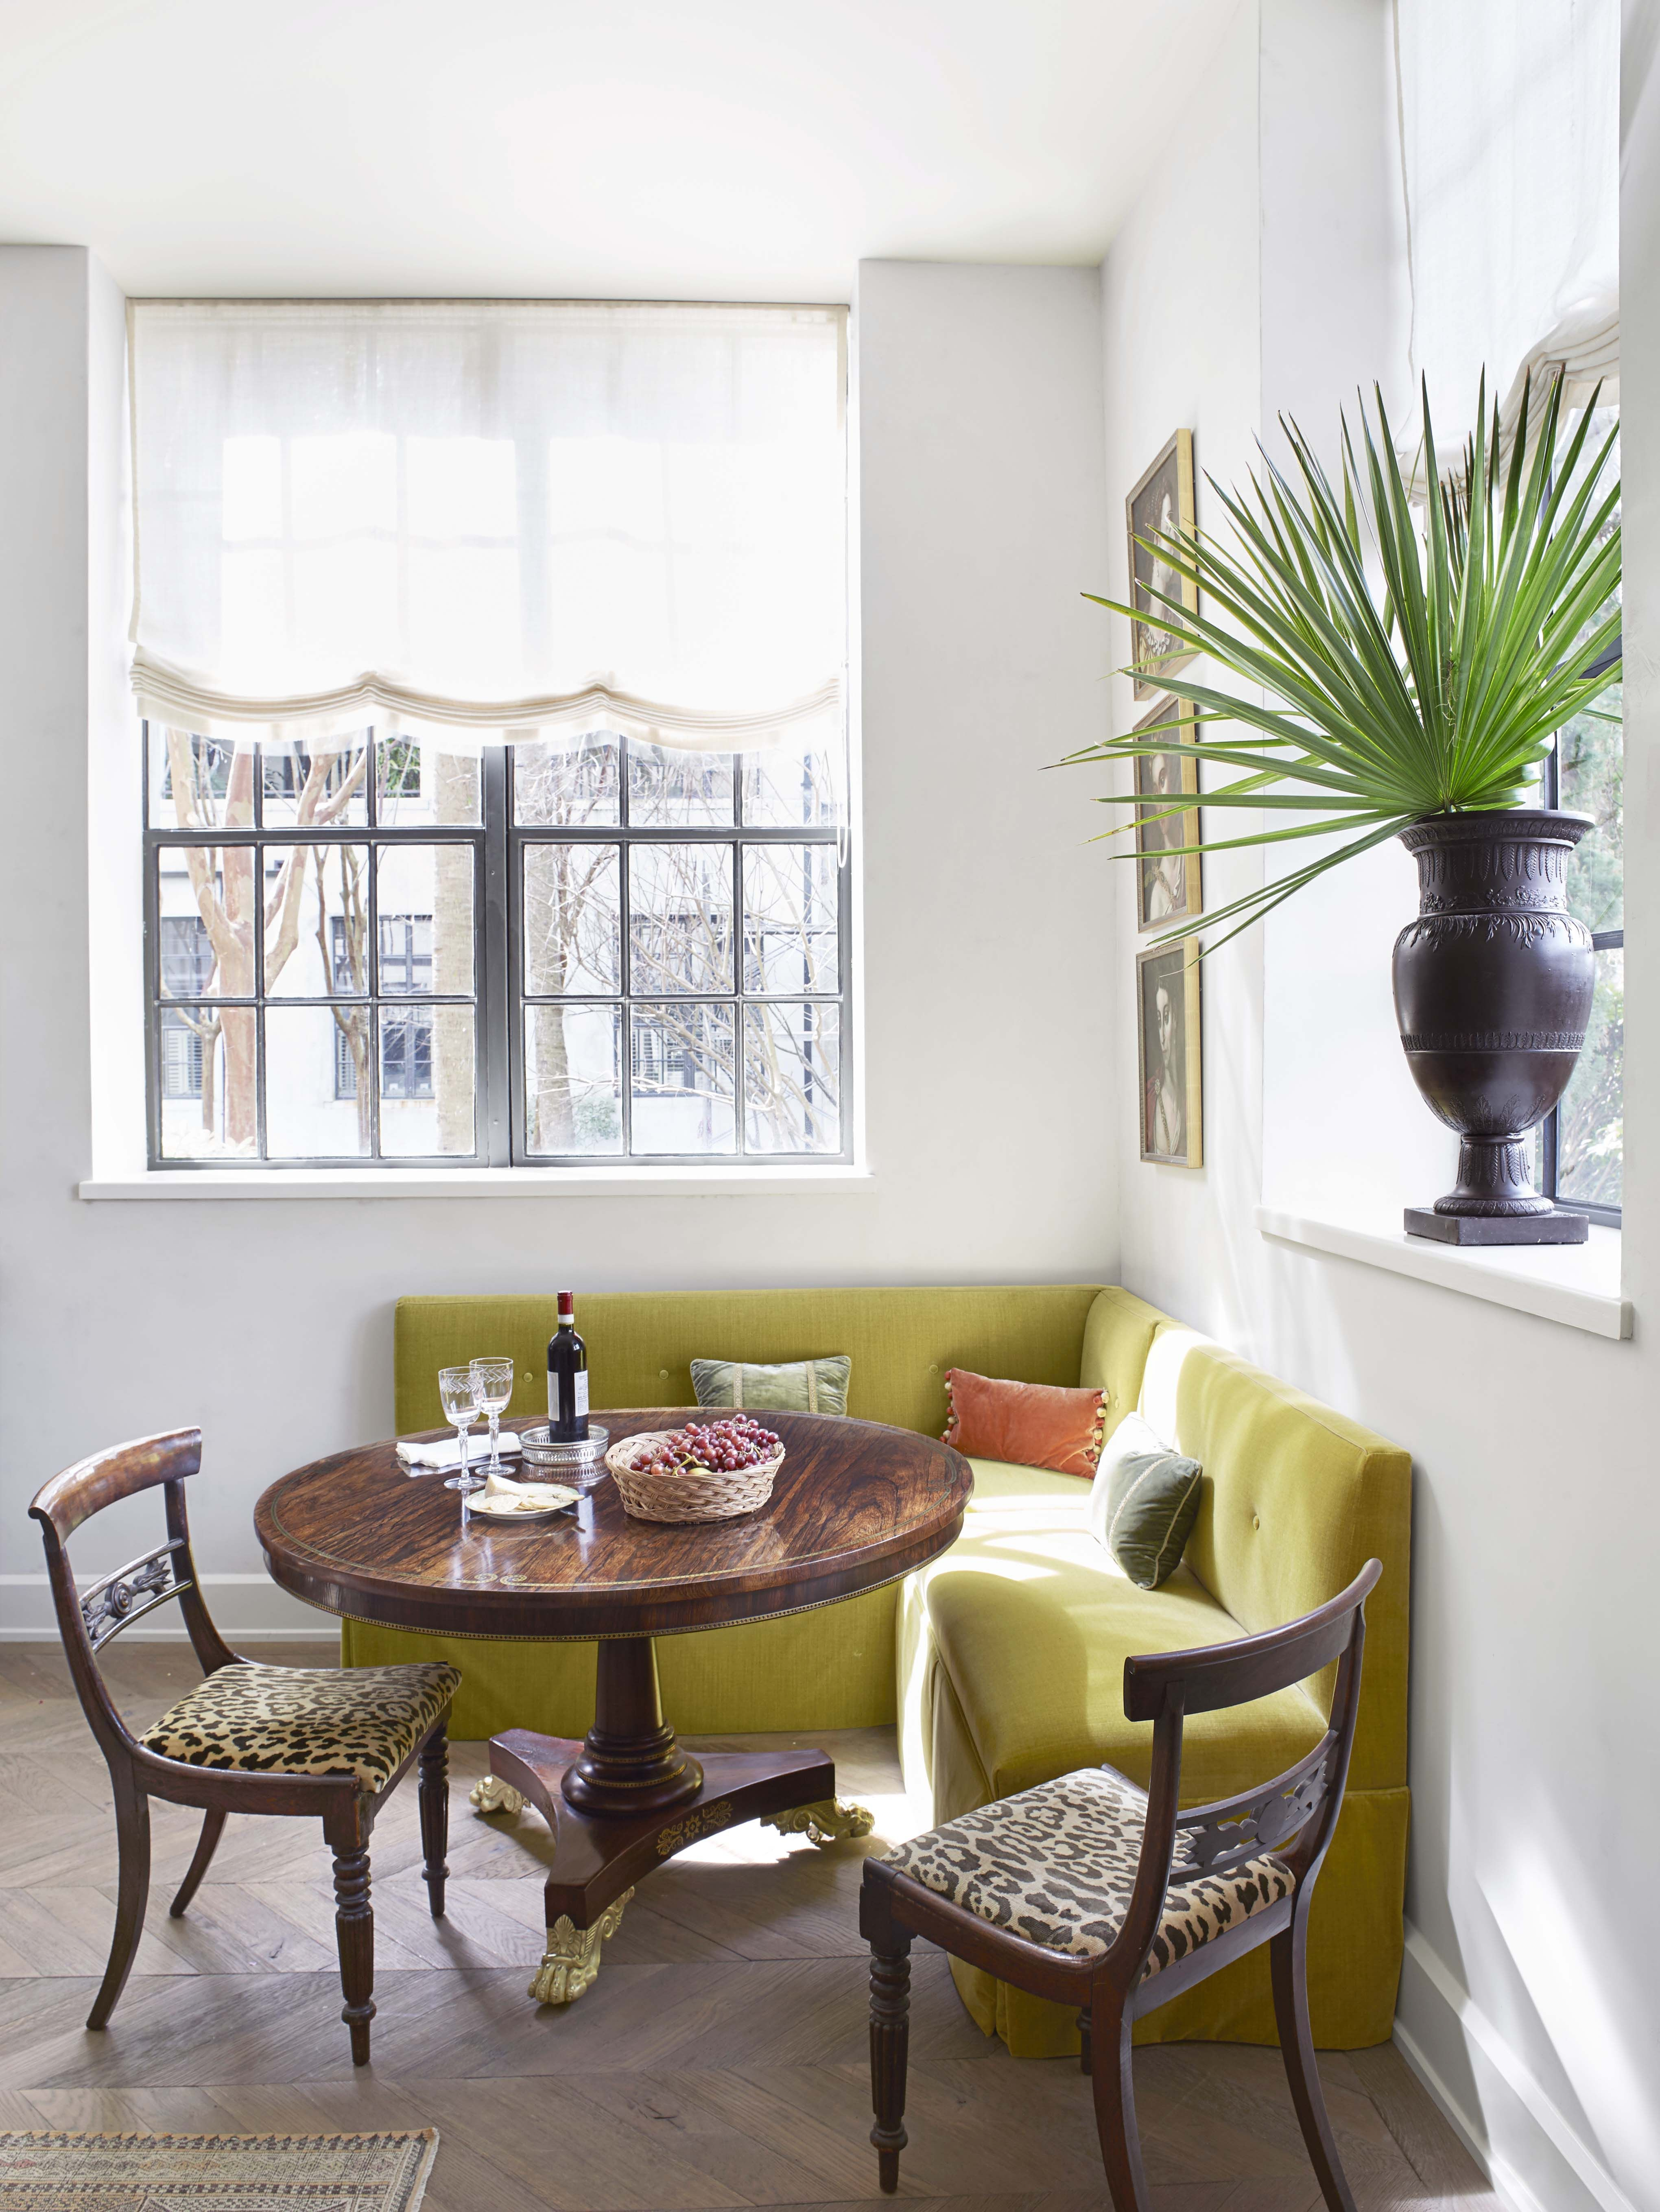 13 Luxe Banquette Ideas 2020 Custom Banquette Seating Ideas